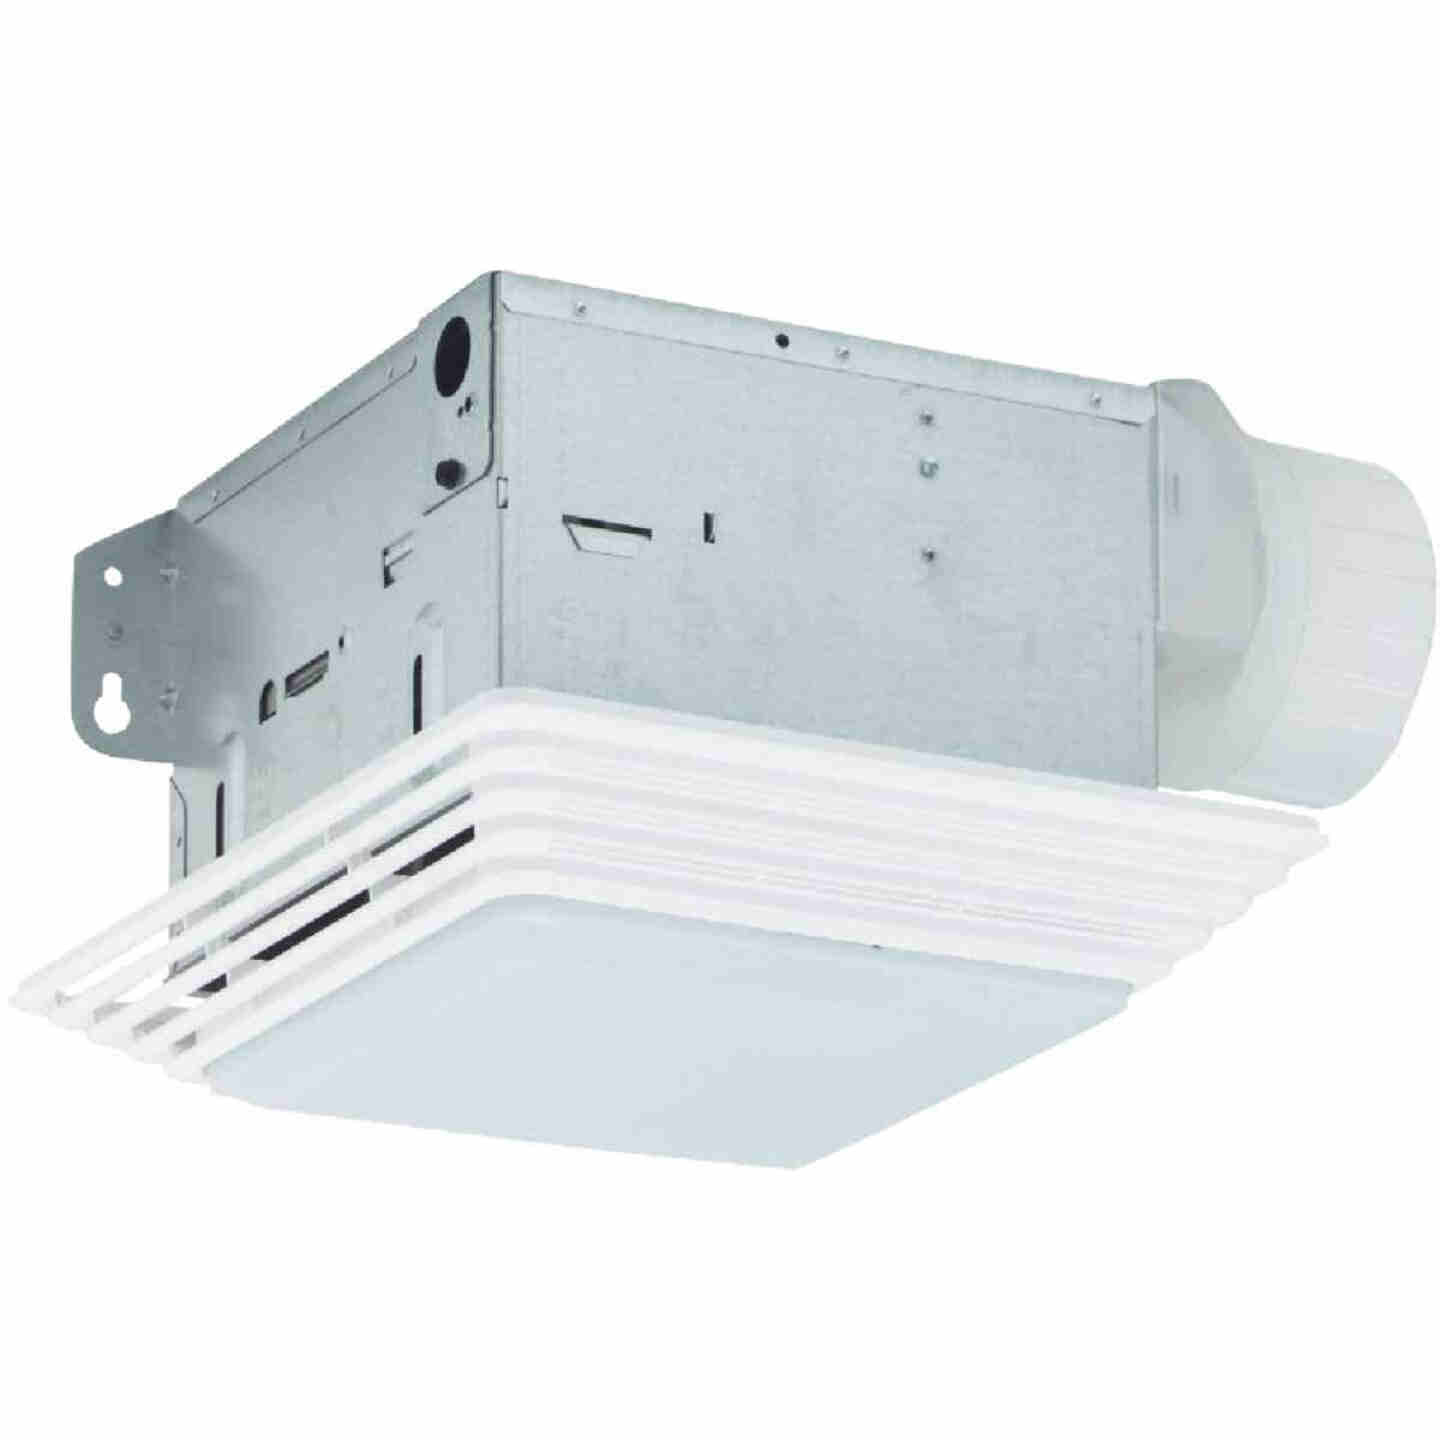 Broan 50 CFM 2.5 Sones 120V Bath Exhaust Fan Image 1